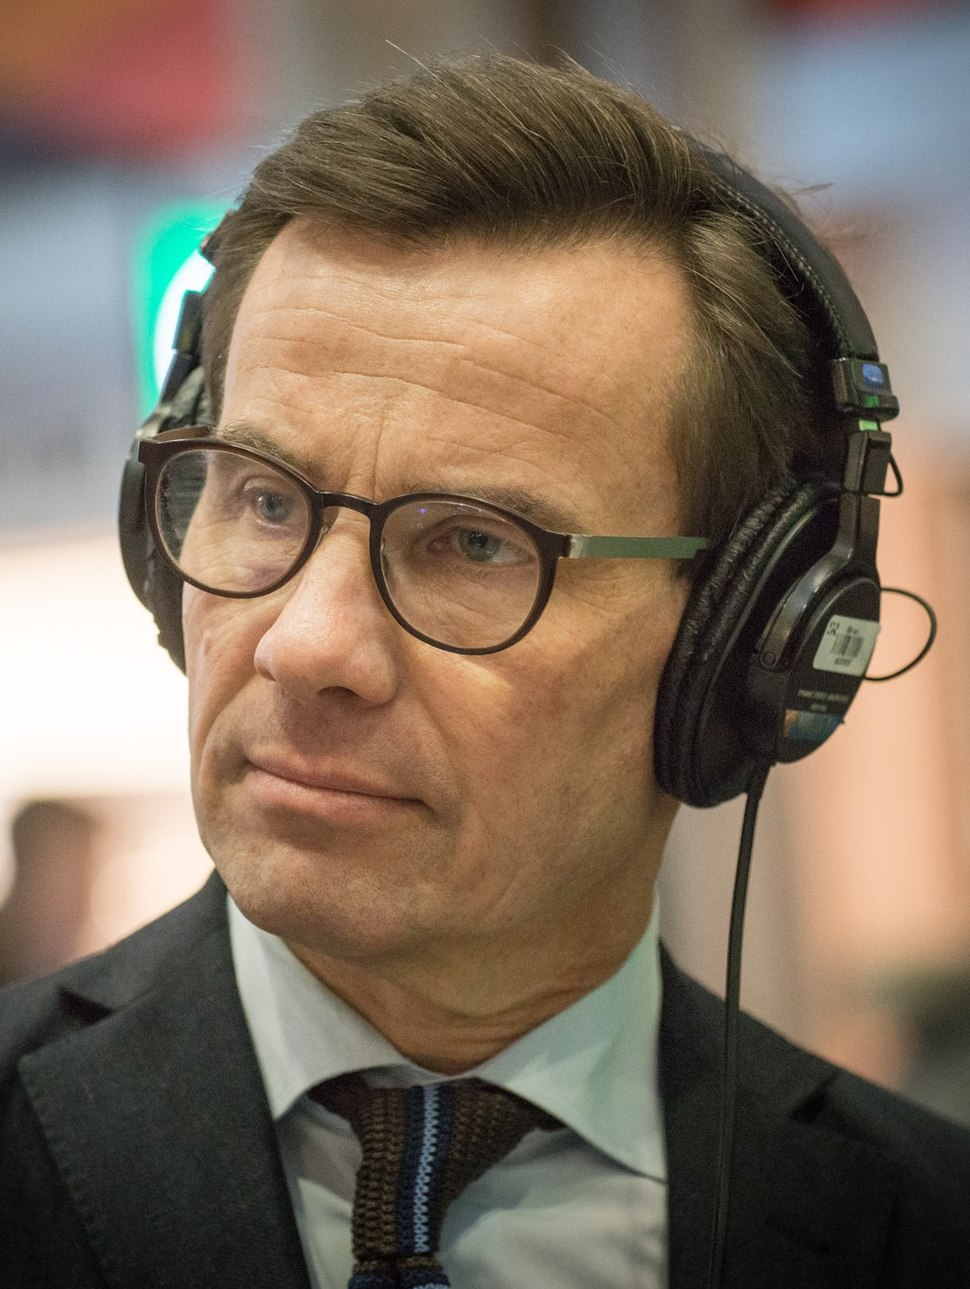 Ulf Kristersson 2017 cropped